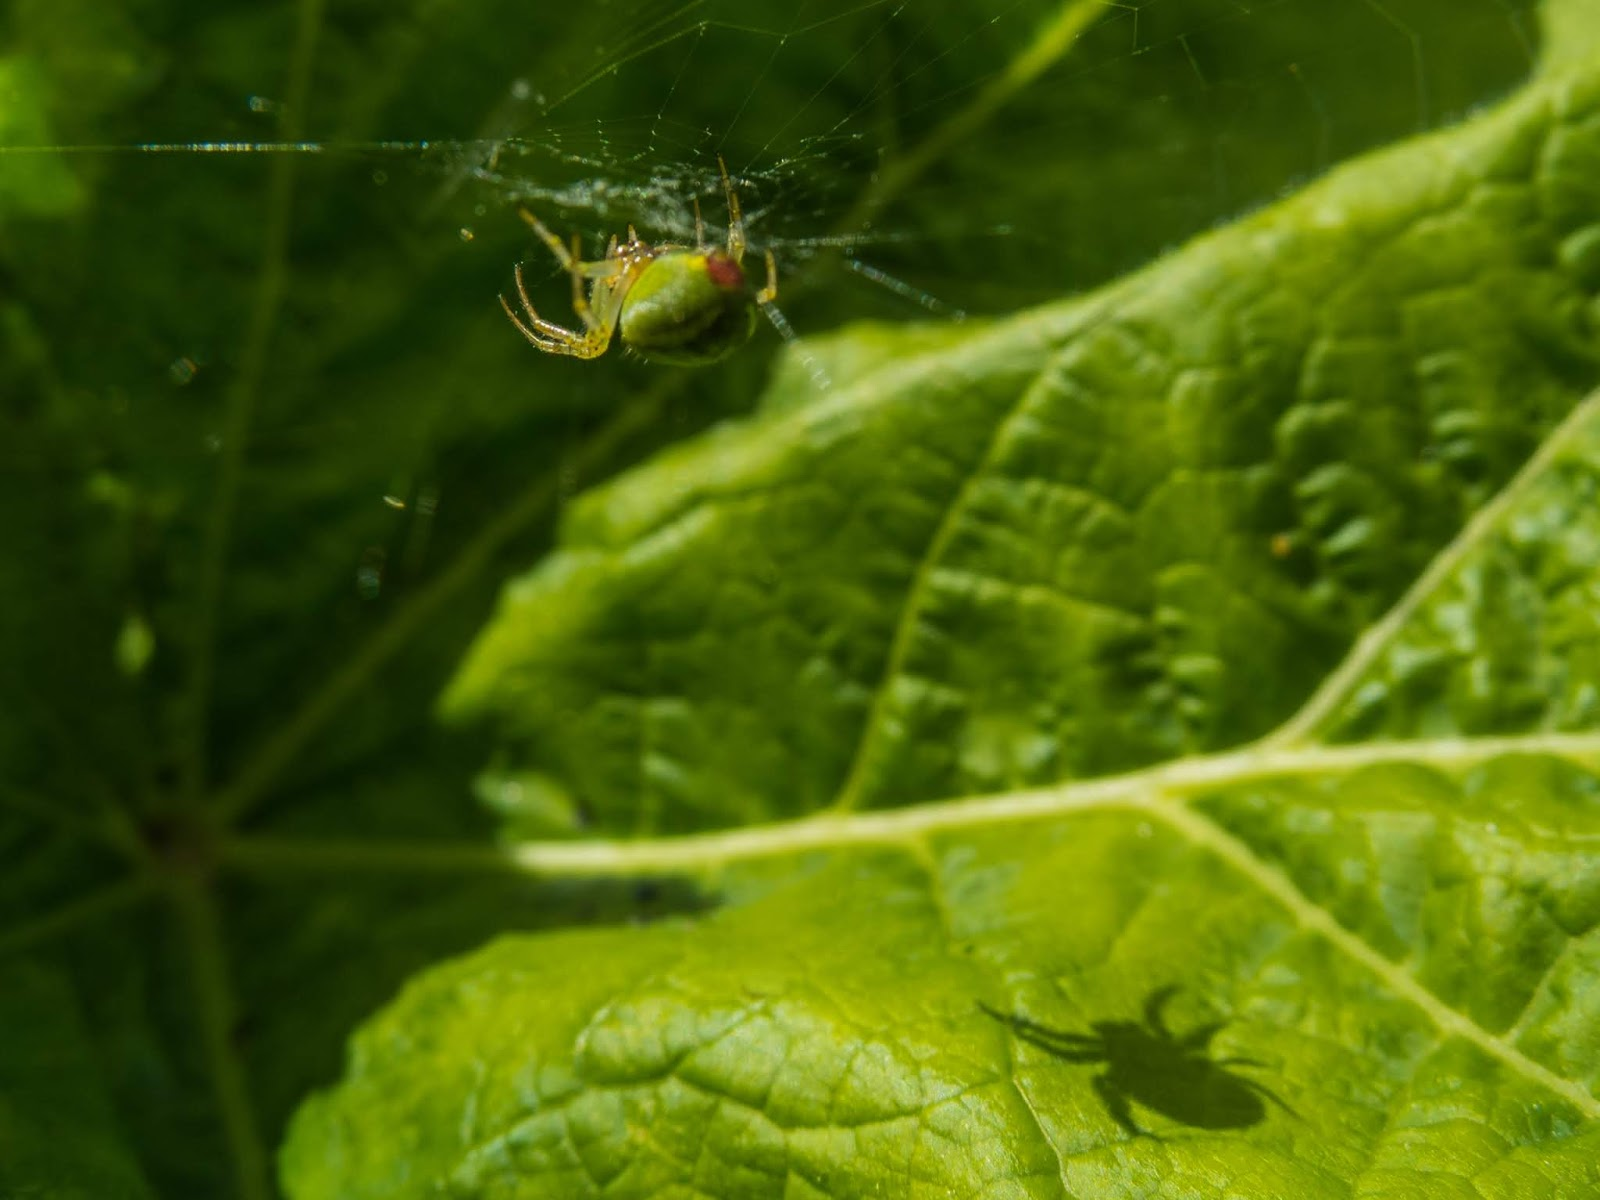 A close up of a sun lit spider in his web with his shadow casting on the leaf.